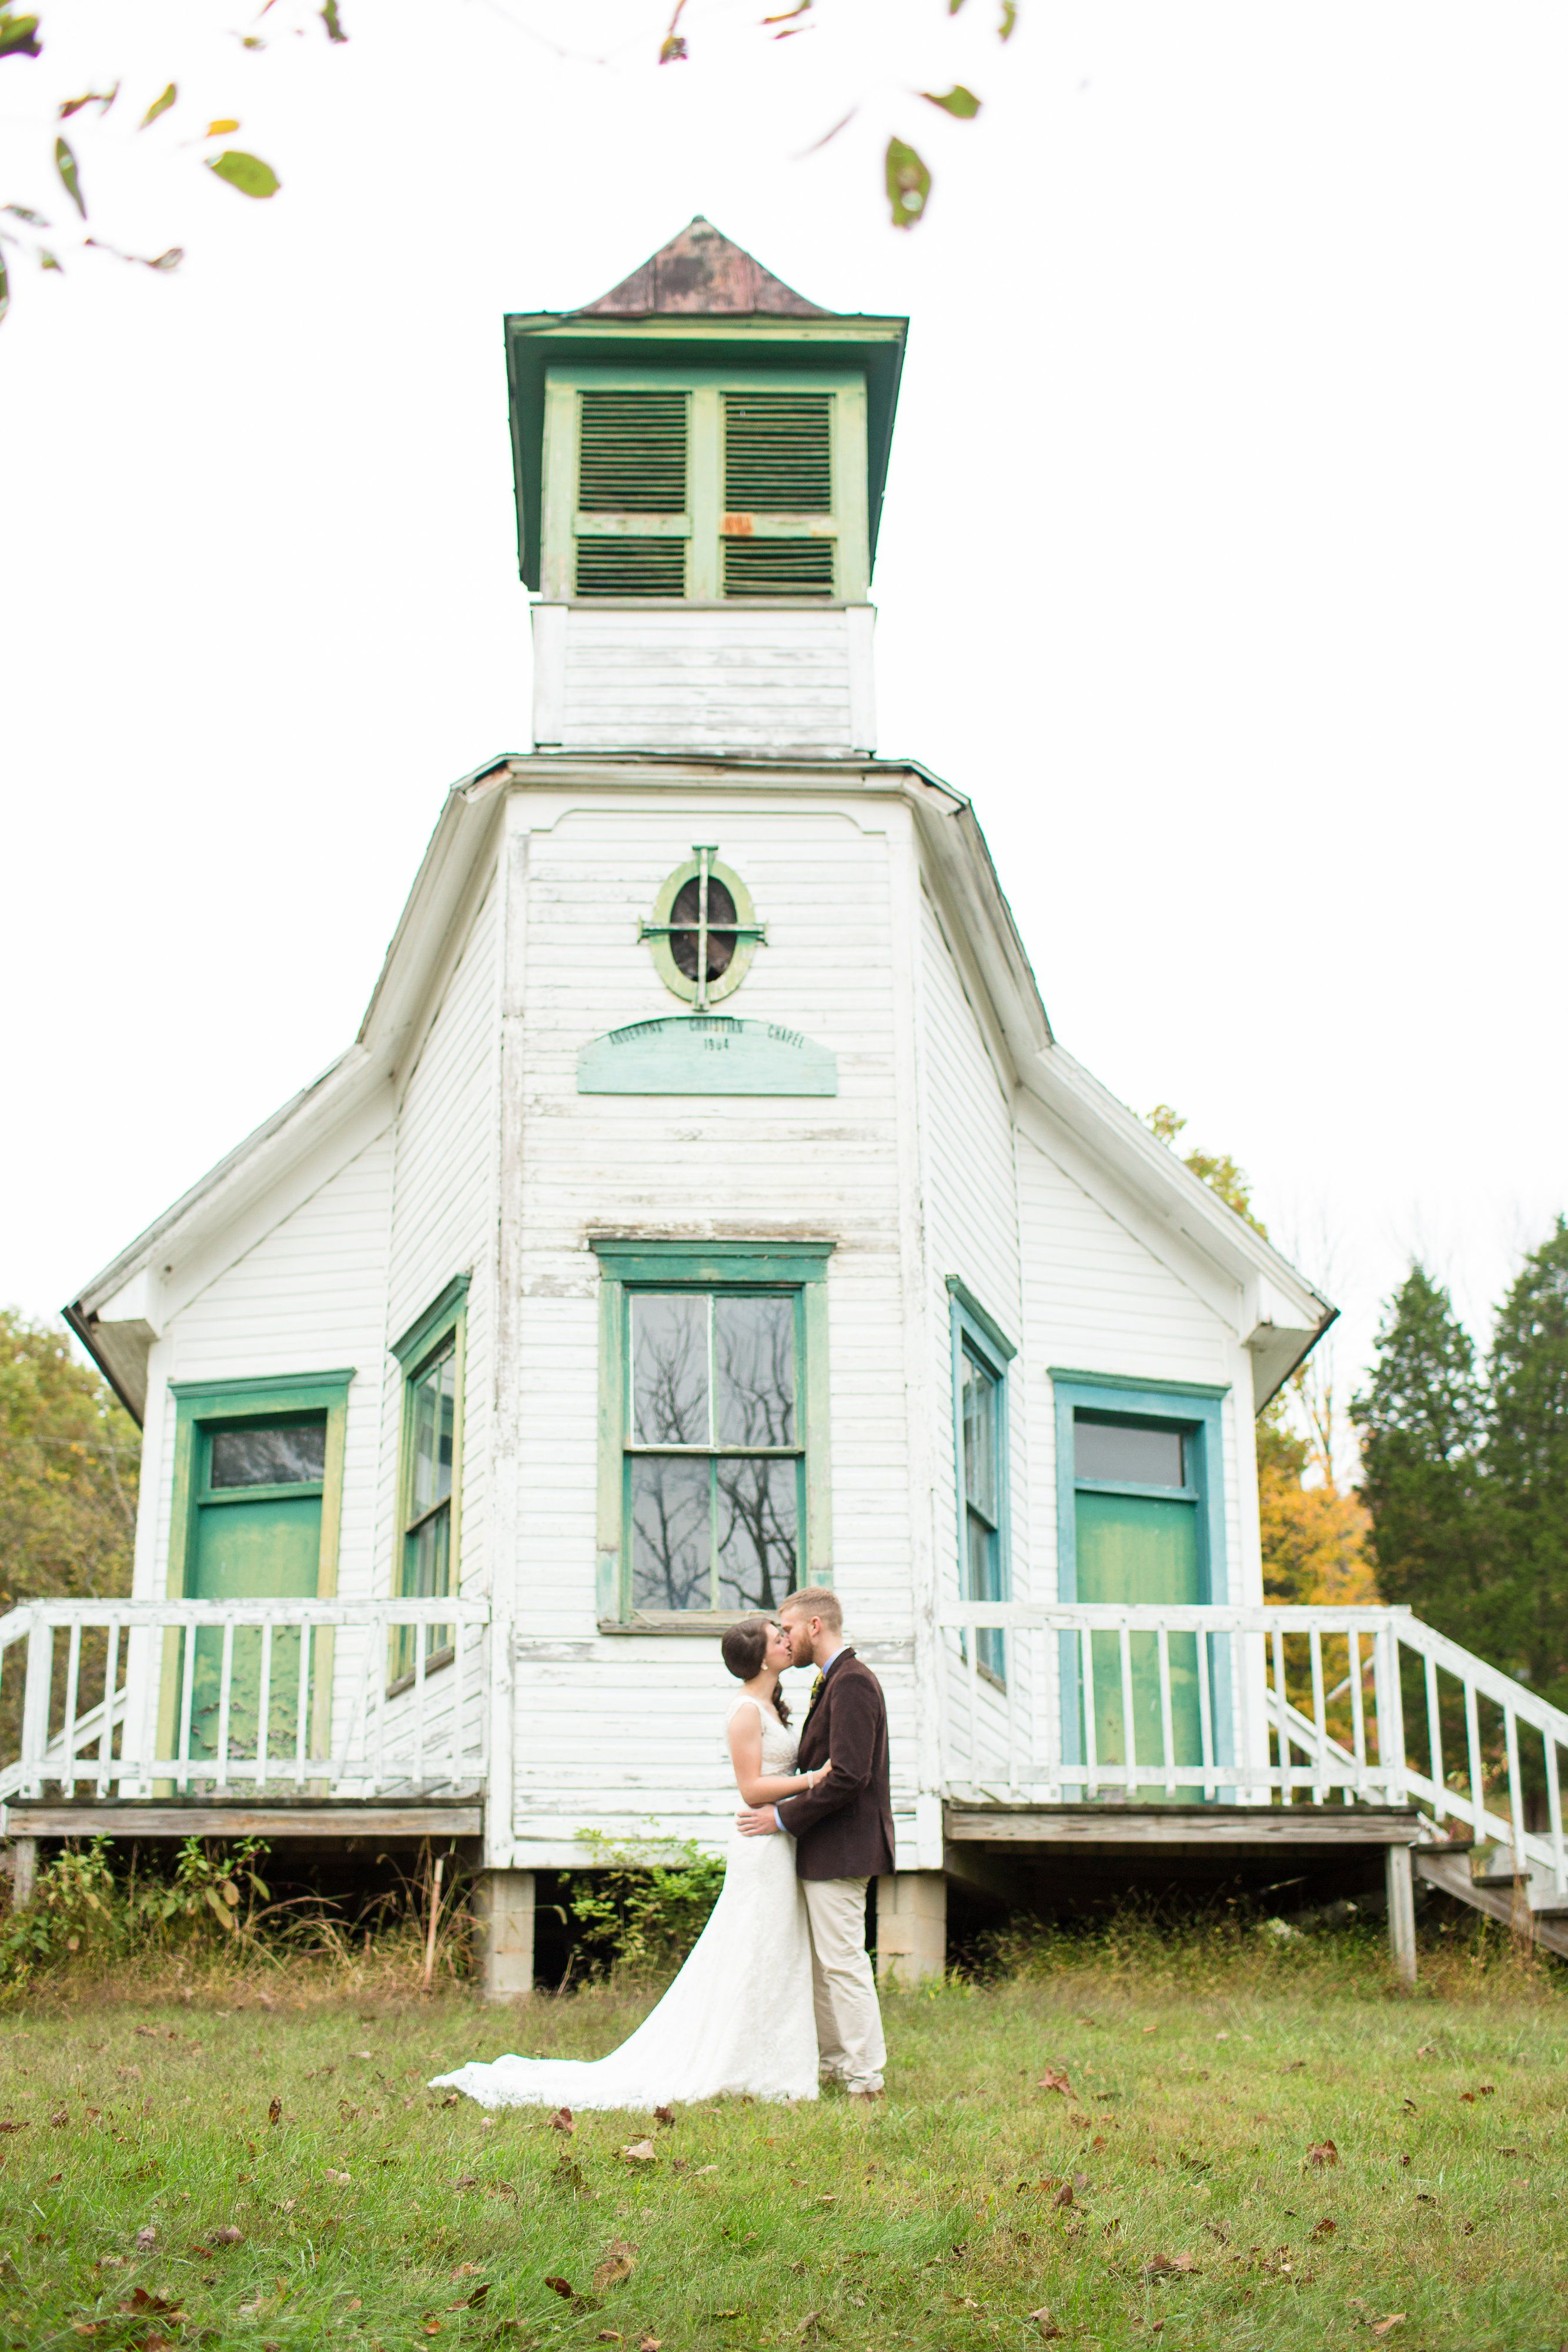 A Country Barn Wedding at Herot Hall Farm in Kenna, West